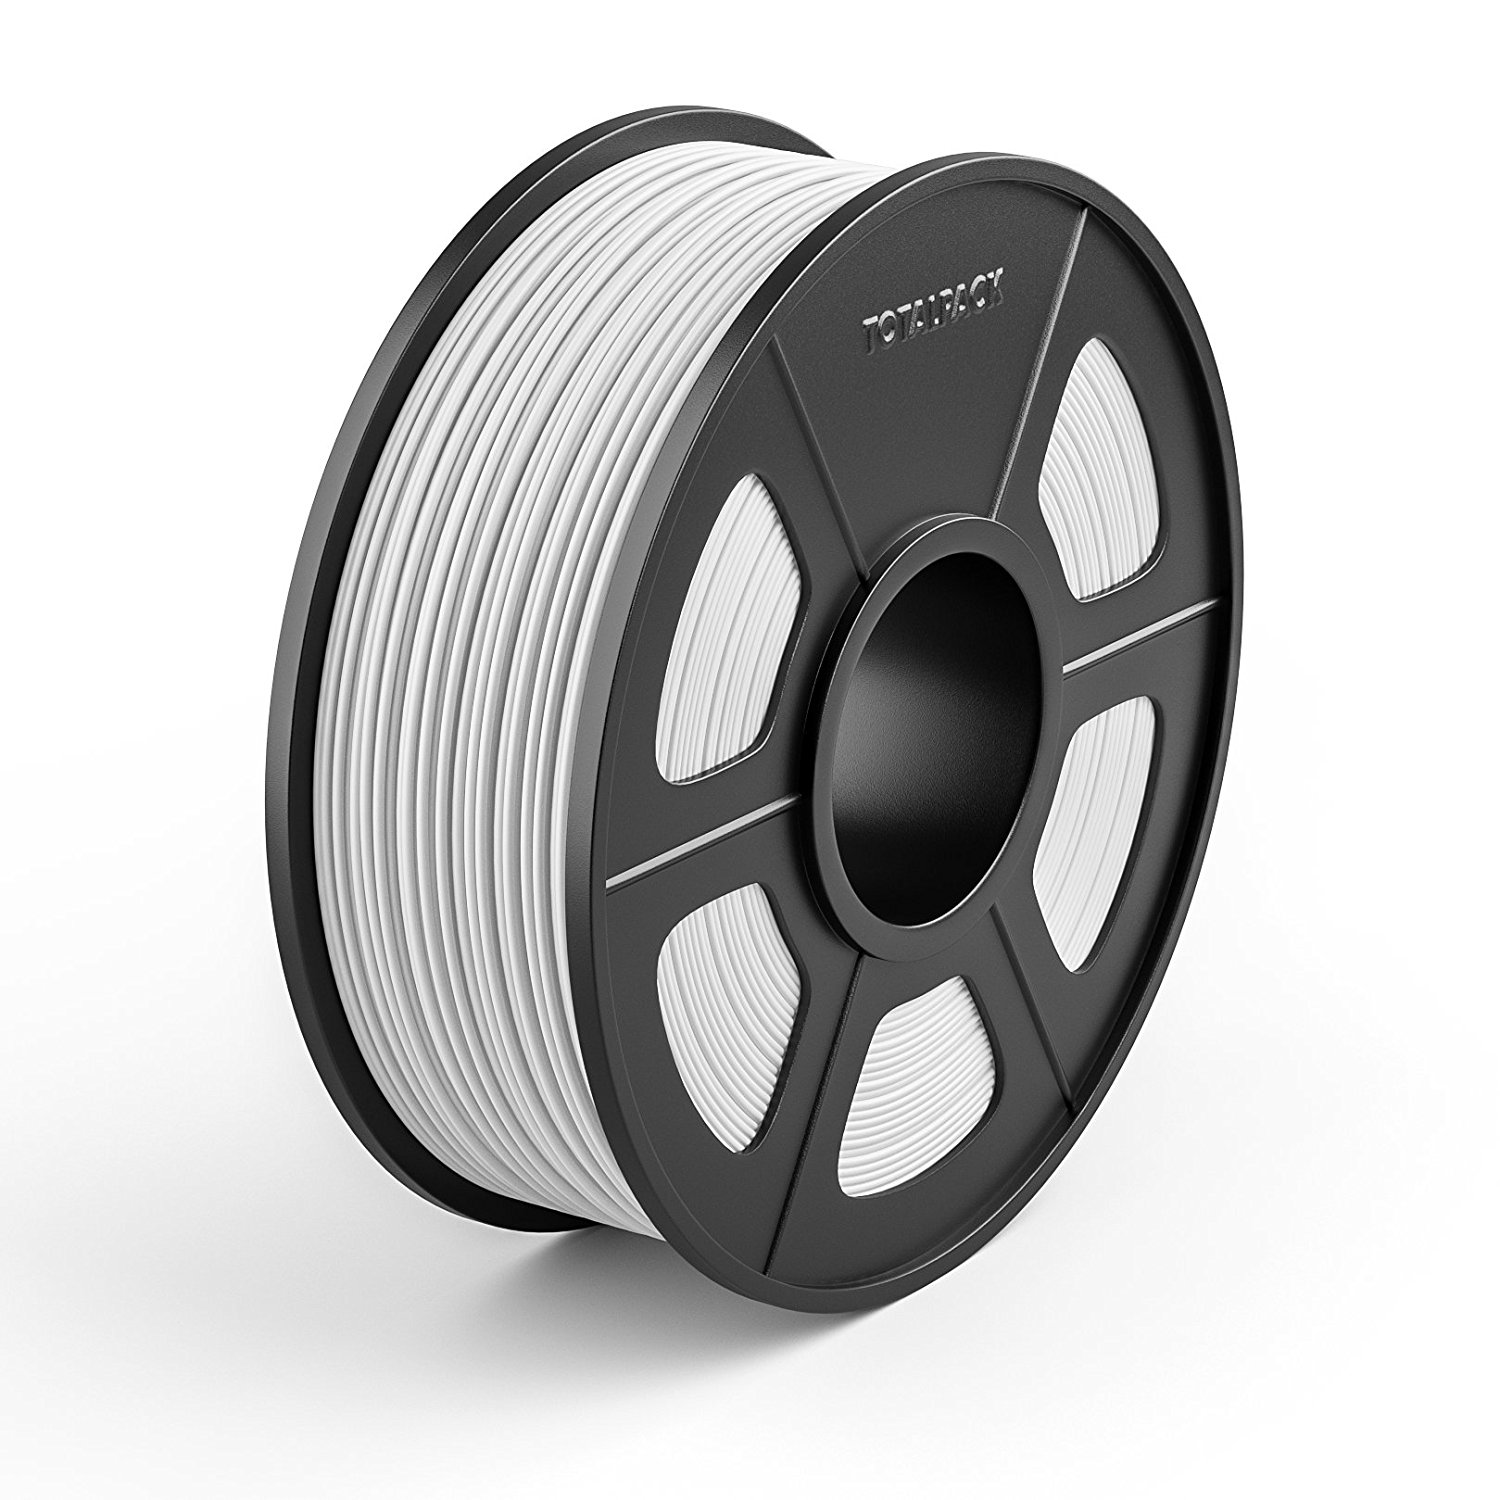 TOTALPACK 3D PETG 1.75mm Printing Filament For 3D Printers –Universal, Low Warp & Easy To Print Thermoplastic Filament, Dimensional Accuracy +/-0.02mm, Perfect For Beginners & Pros –1kg Spool